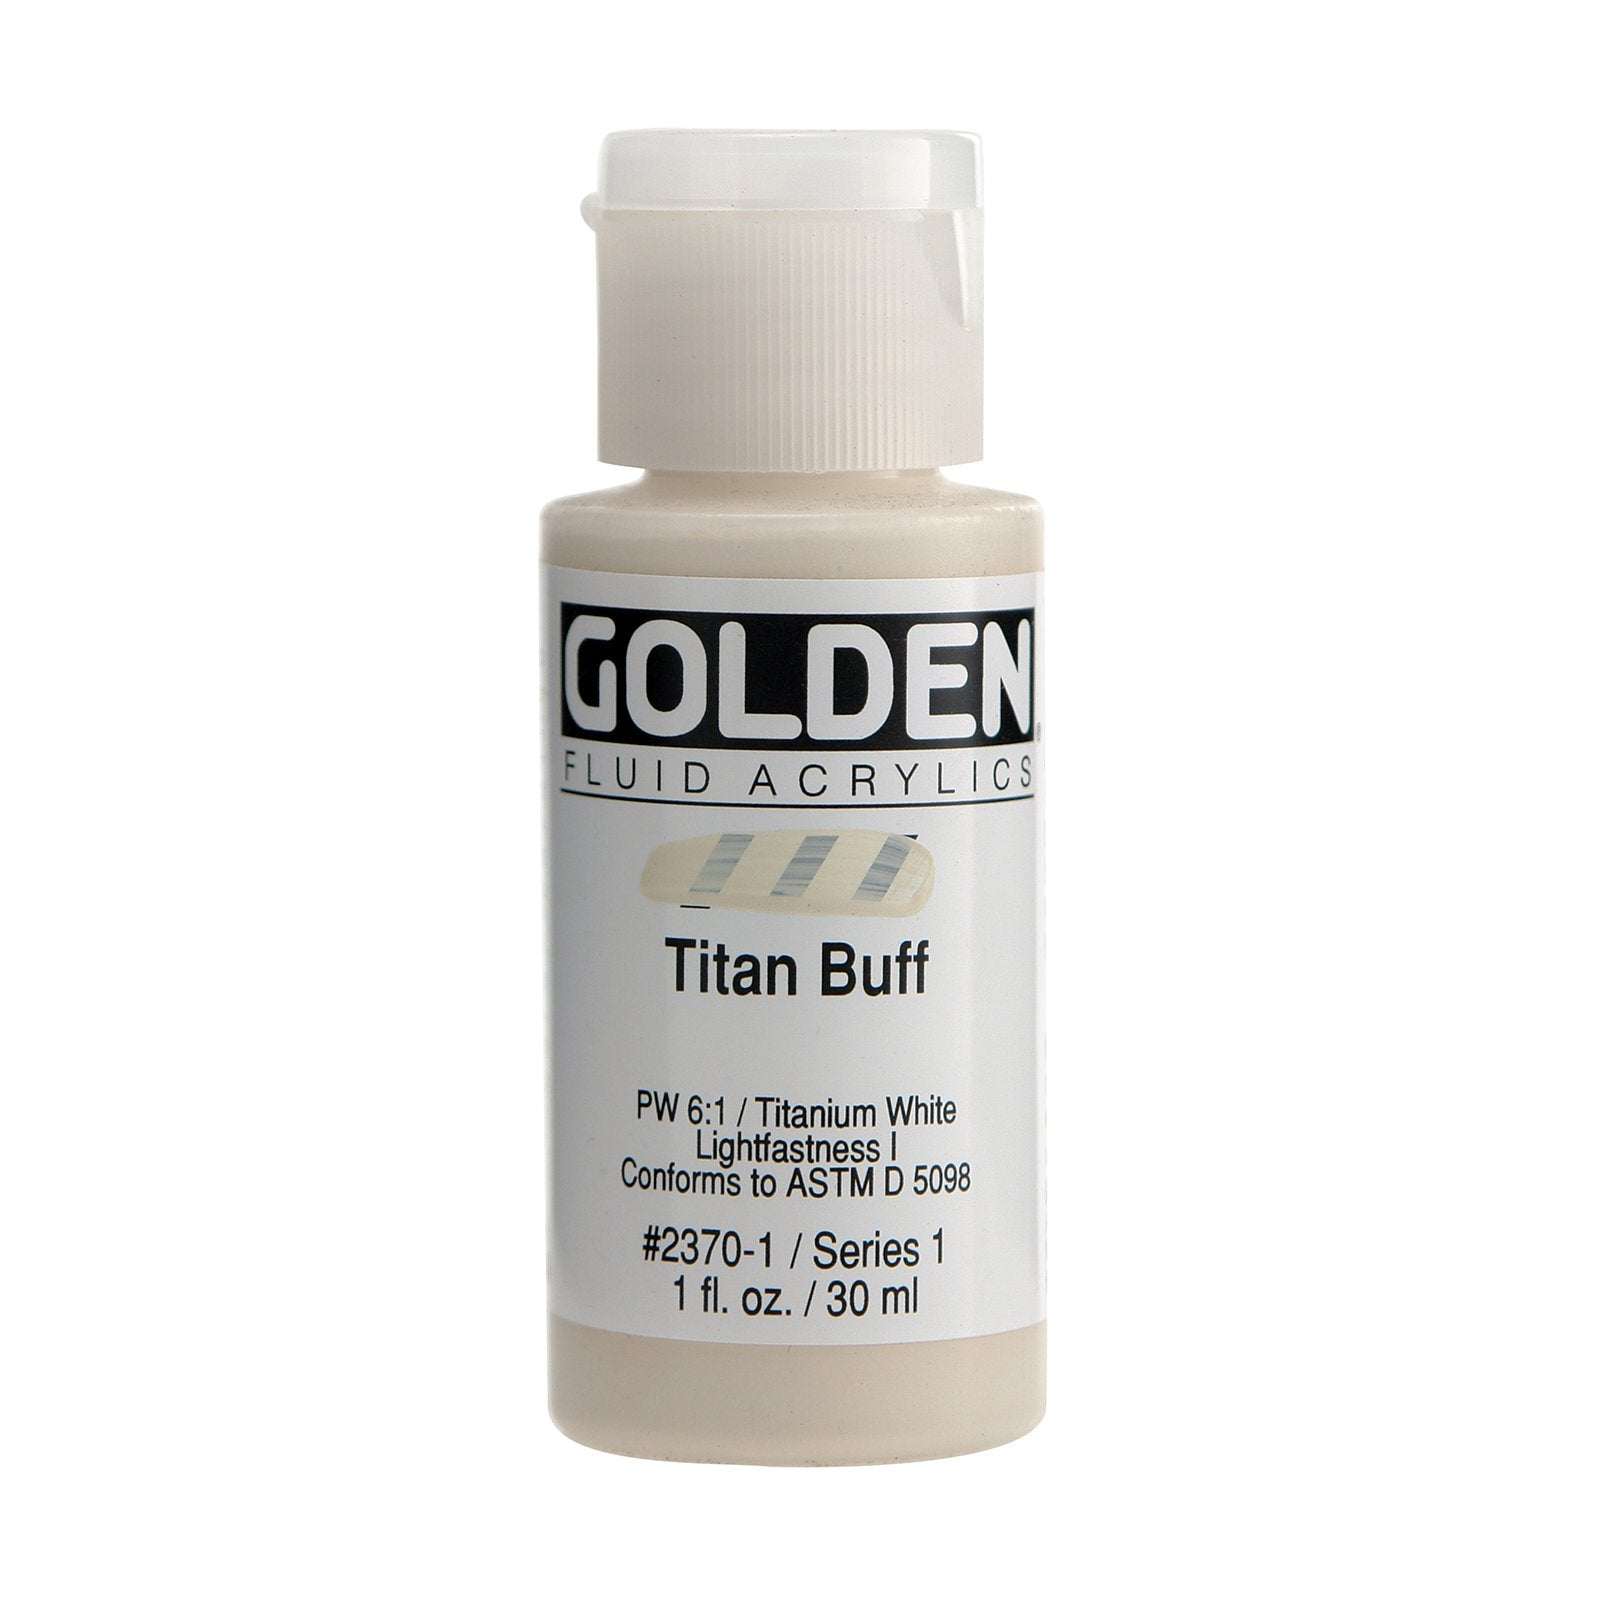 Golden® Fluid Acrylic, 1 oz., Titan Buff